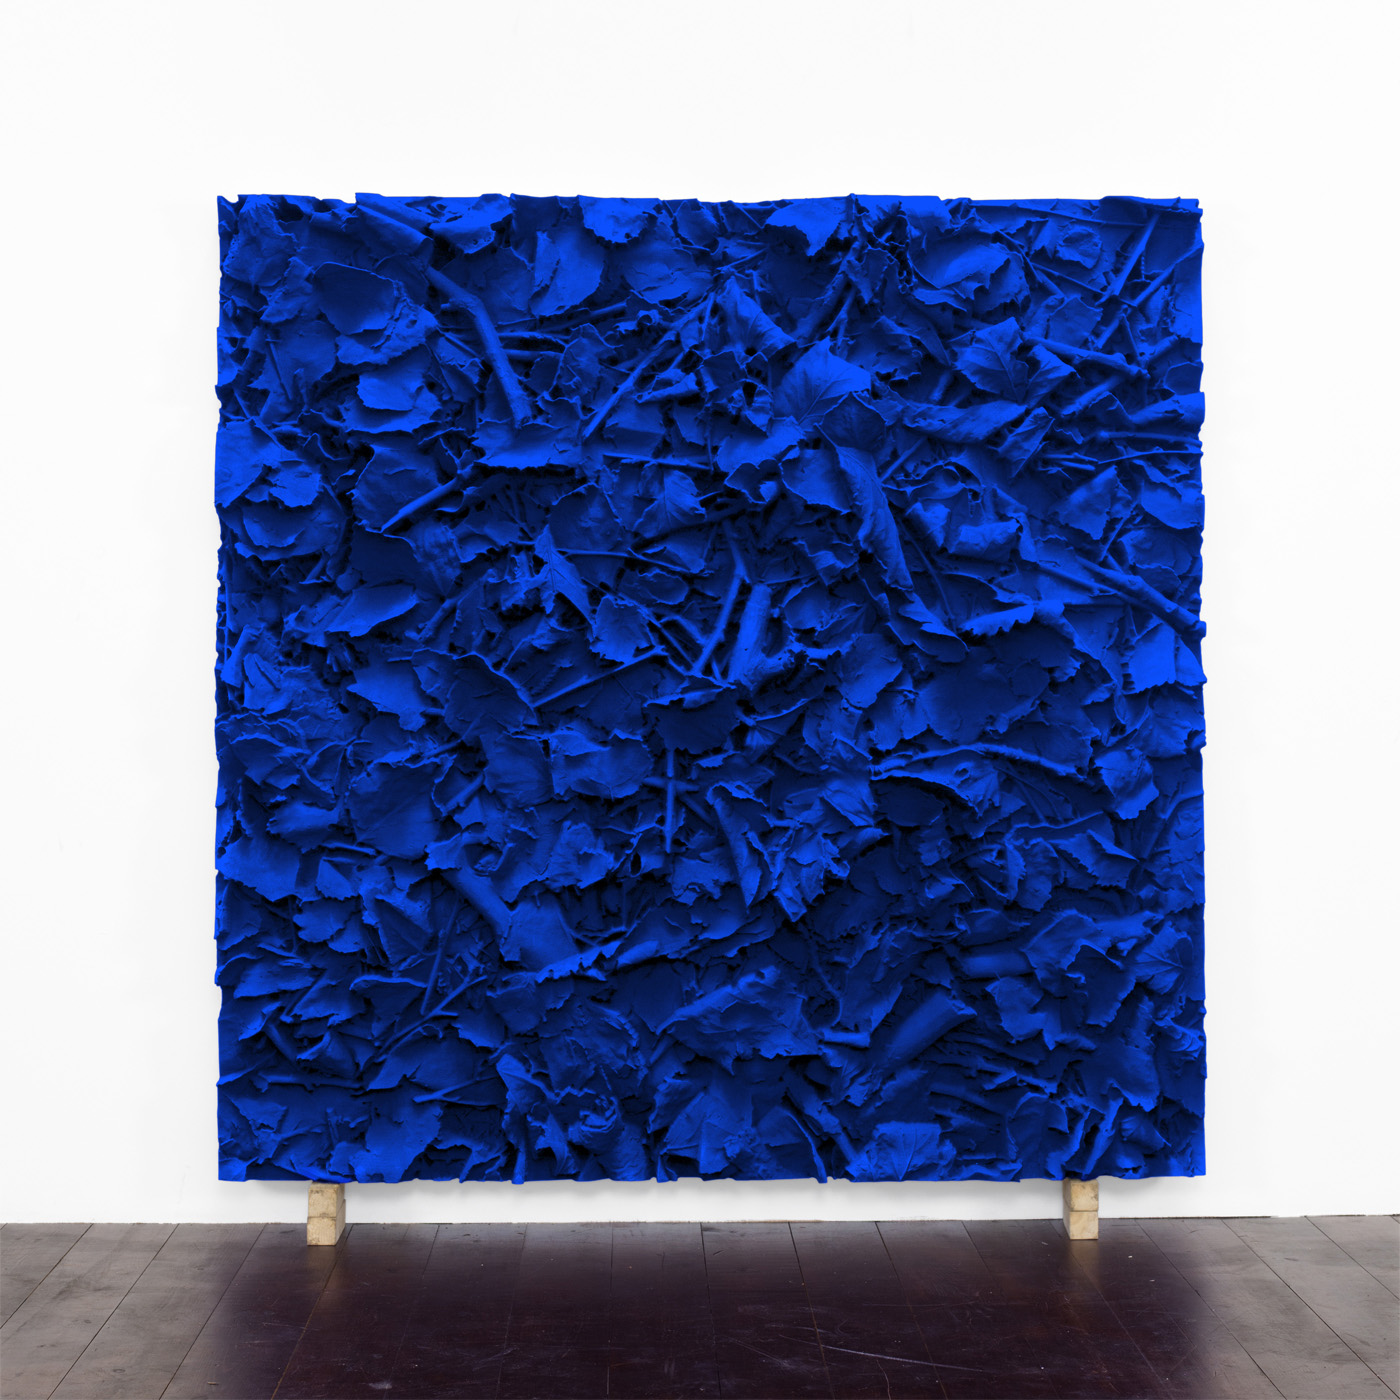 Juri Markkula, IKB Ground, 2016, Pigmented polyvinyl on polyuretan relief, 150 x 150 x 13 cm